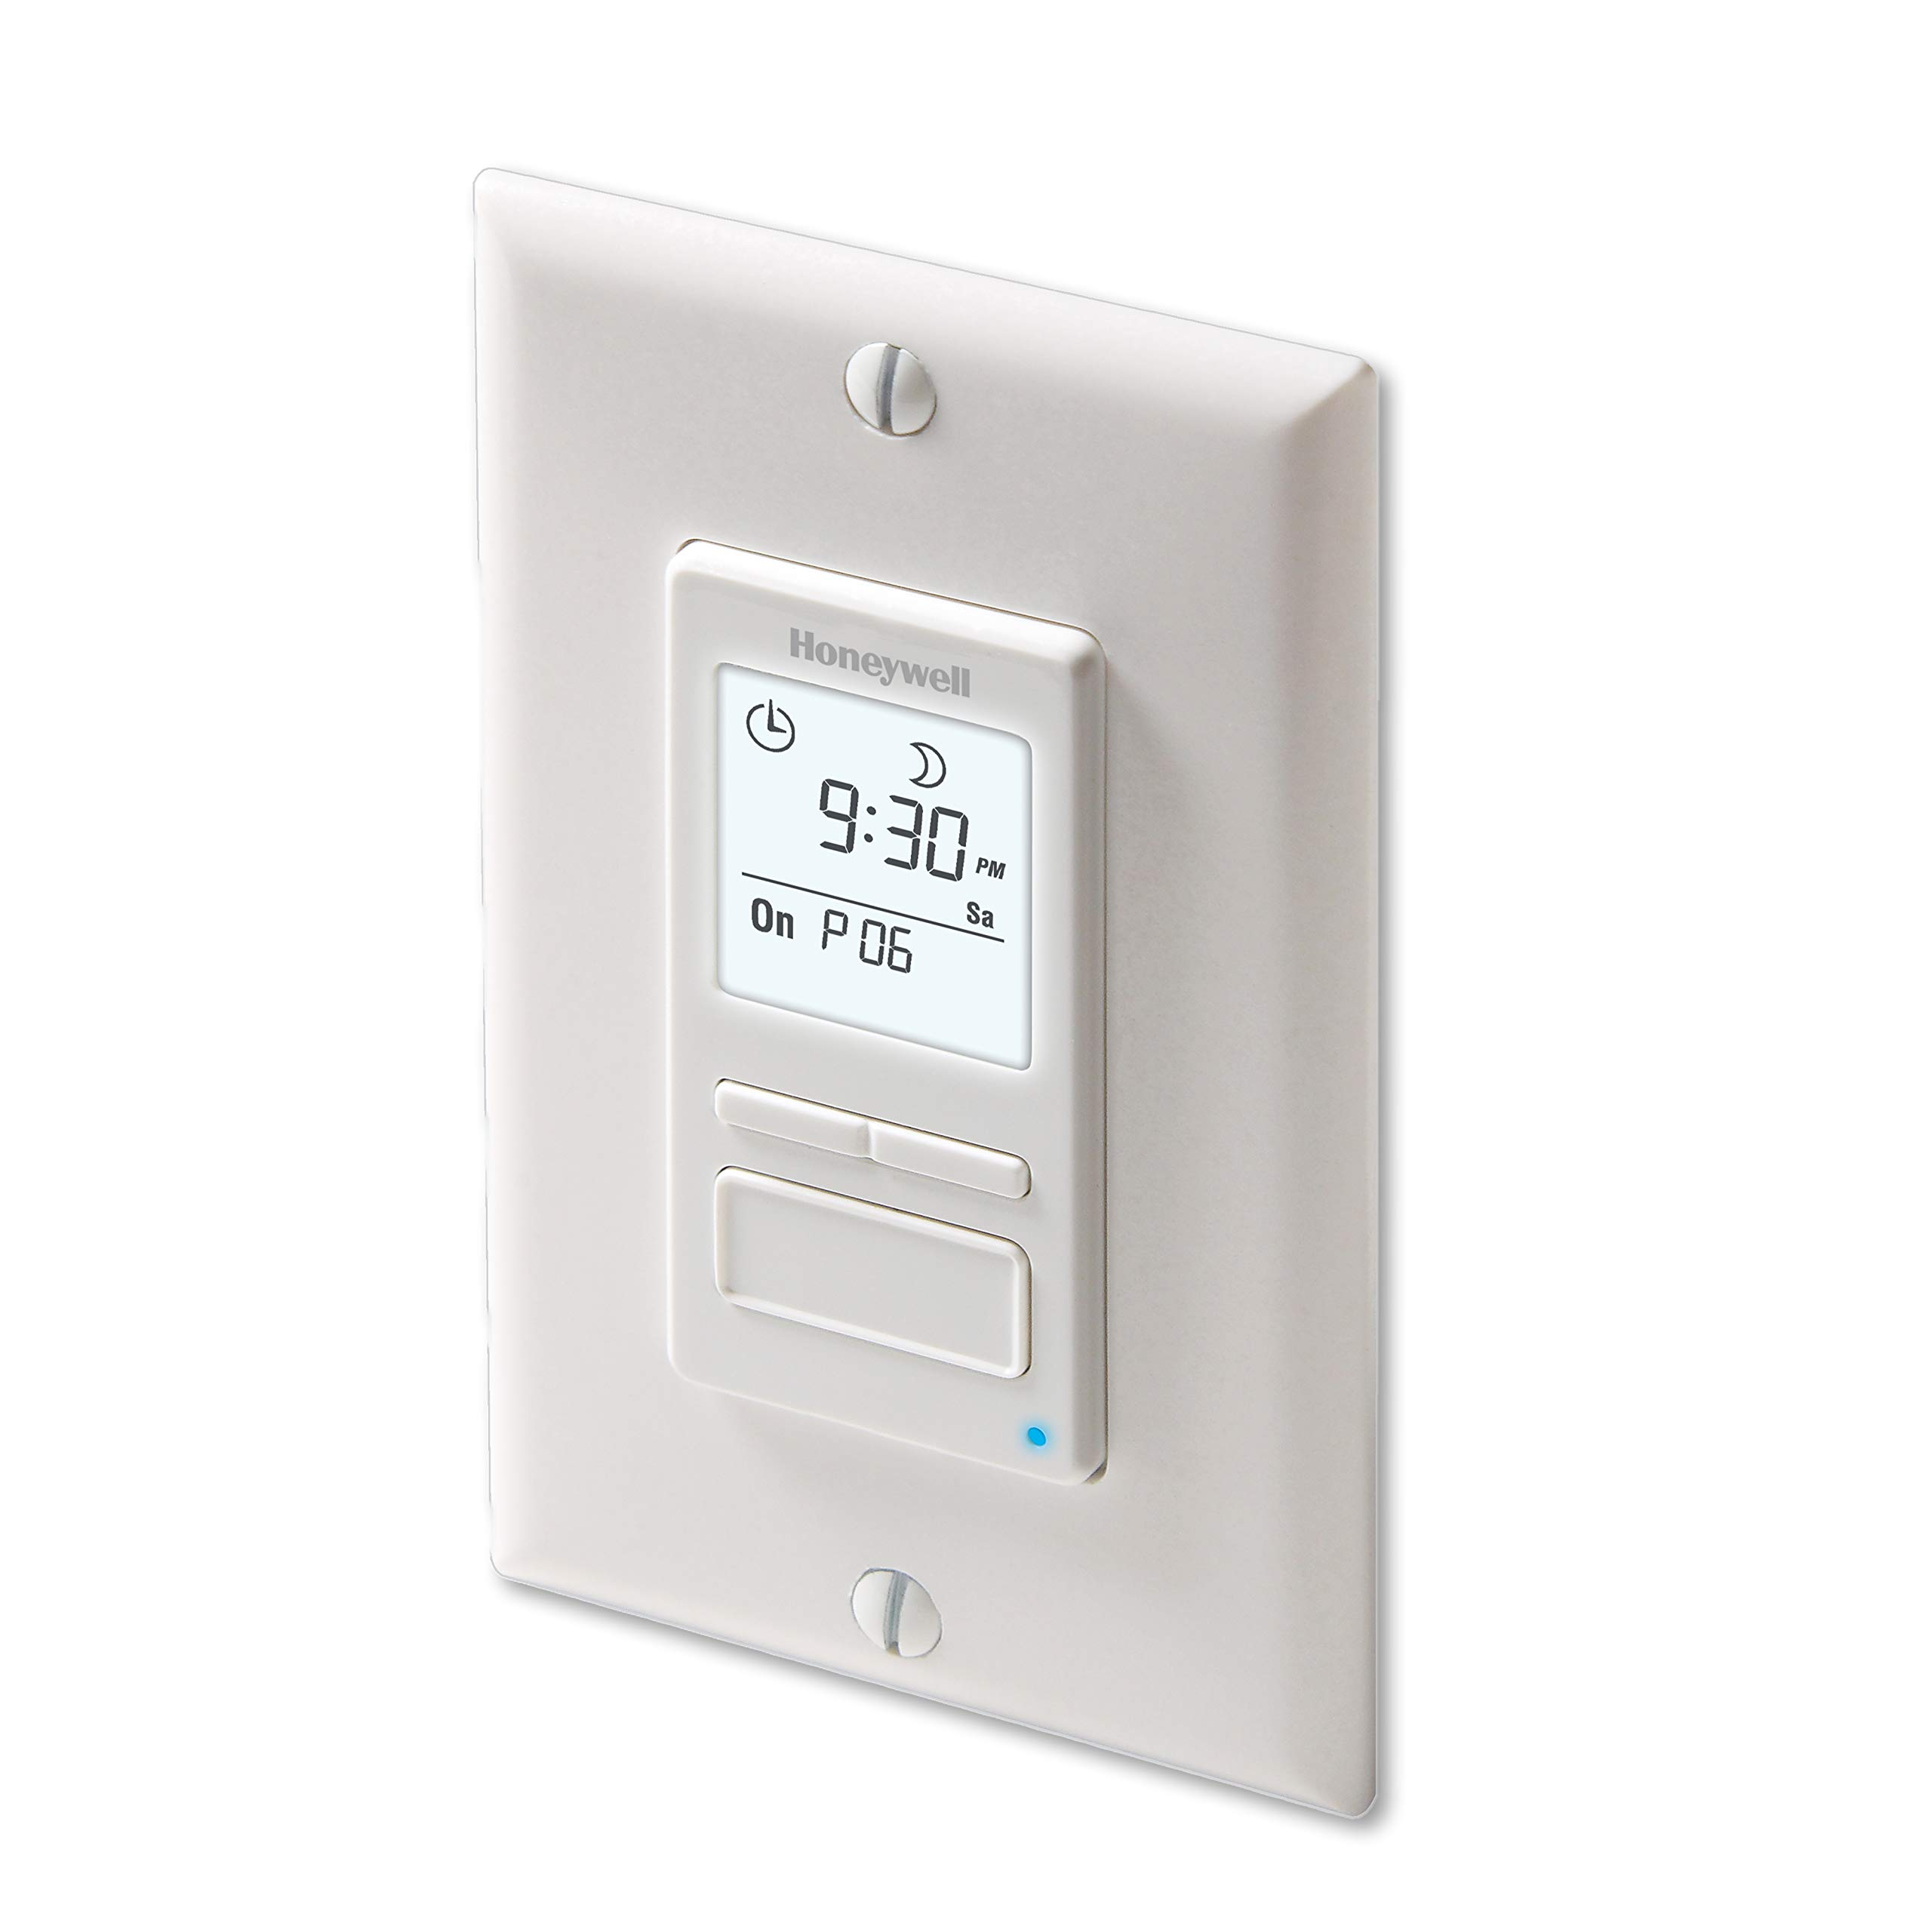 honeywell wall timer instructions